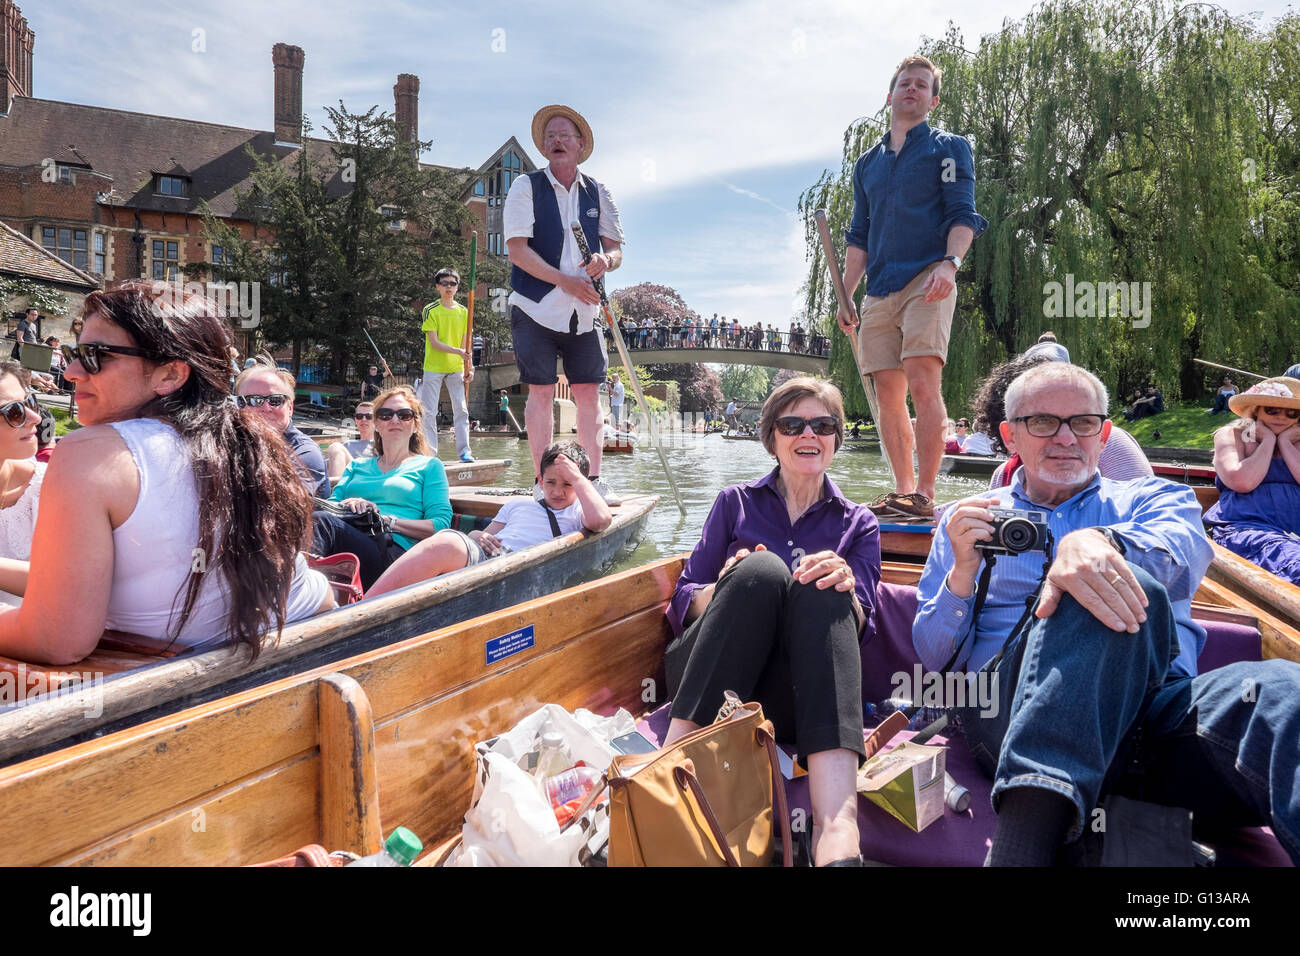 A crowd of punting boats collide crash hit along the Cam River punt tour on a sunny day in May. Stock Photo